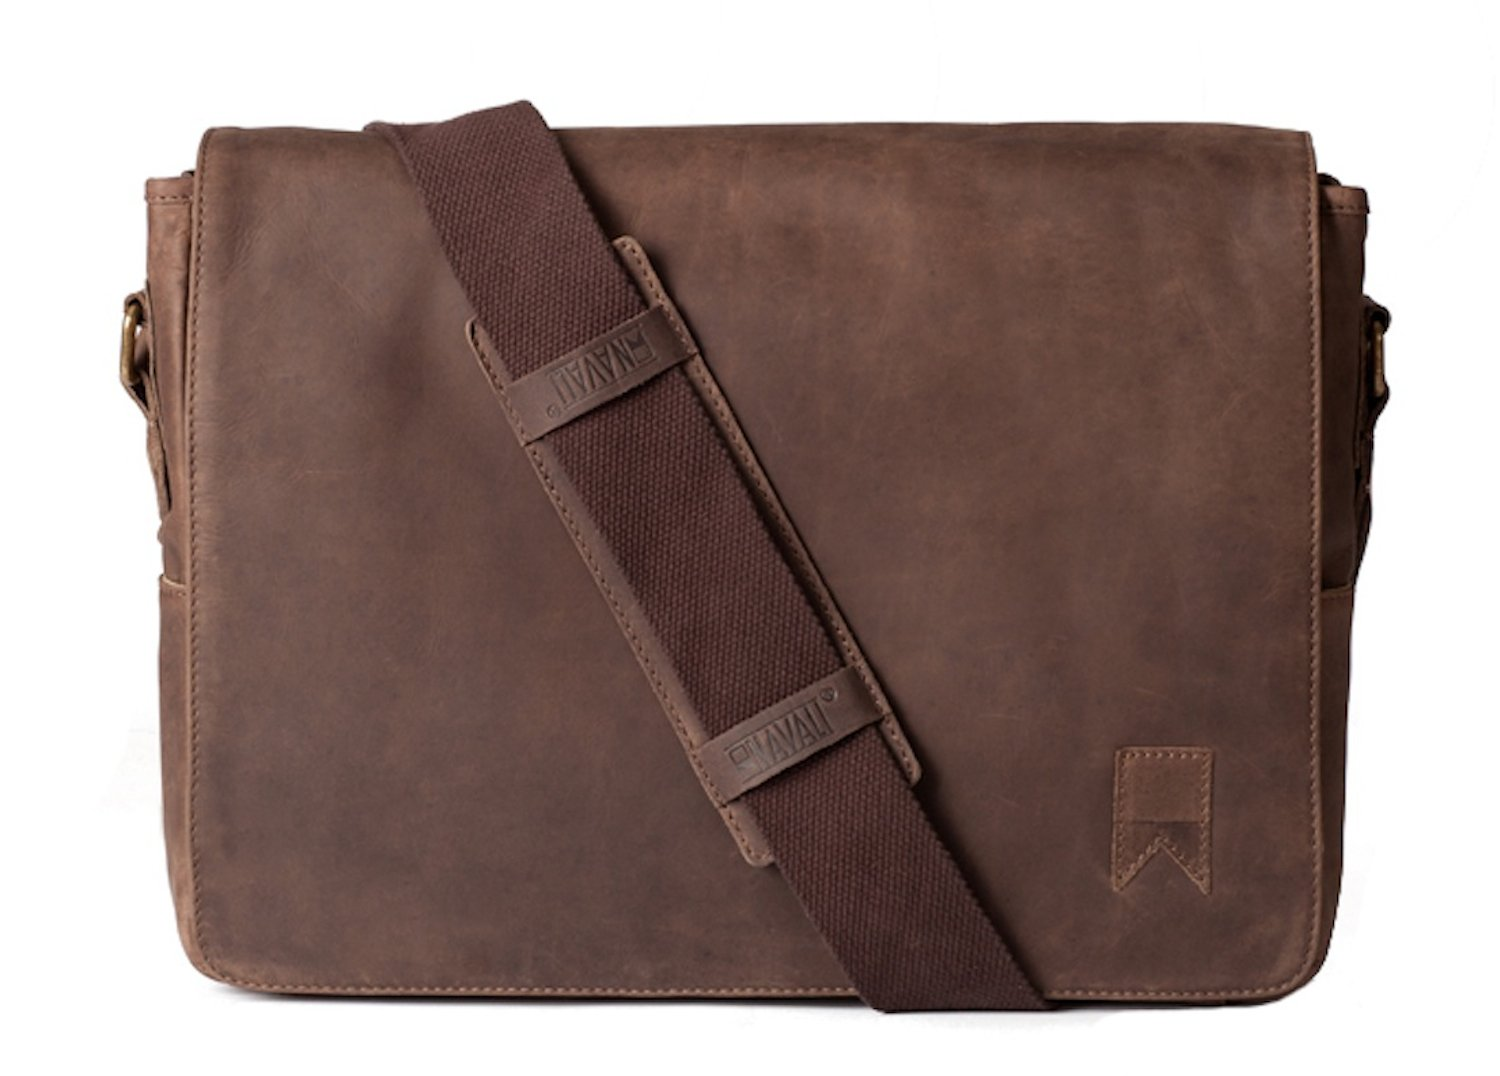 Navali Leather Mainstay Computer Messenger Bag, Brown